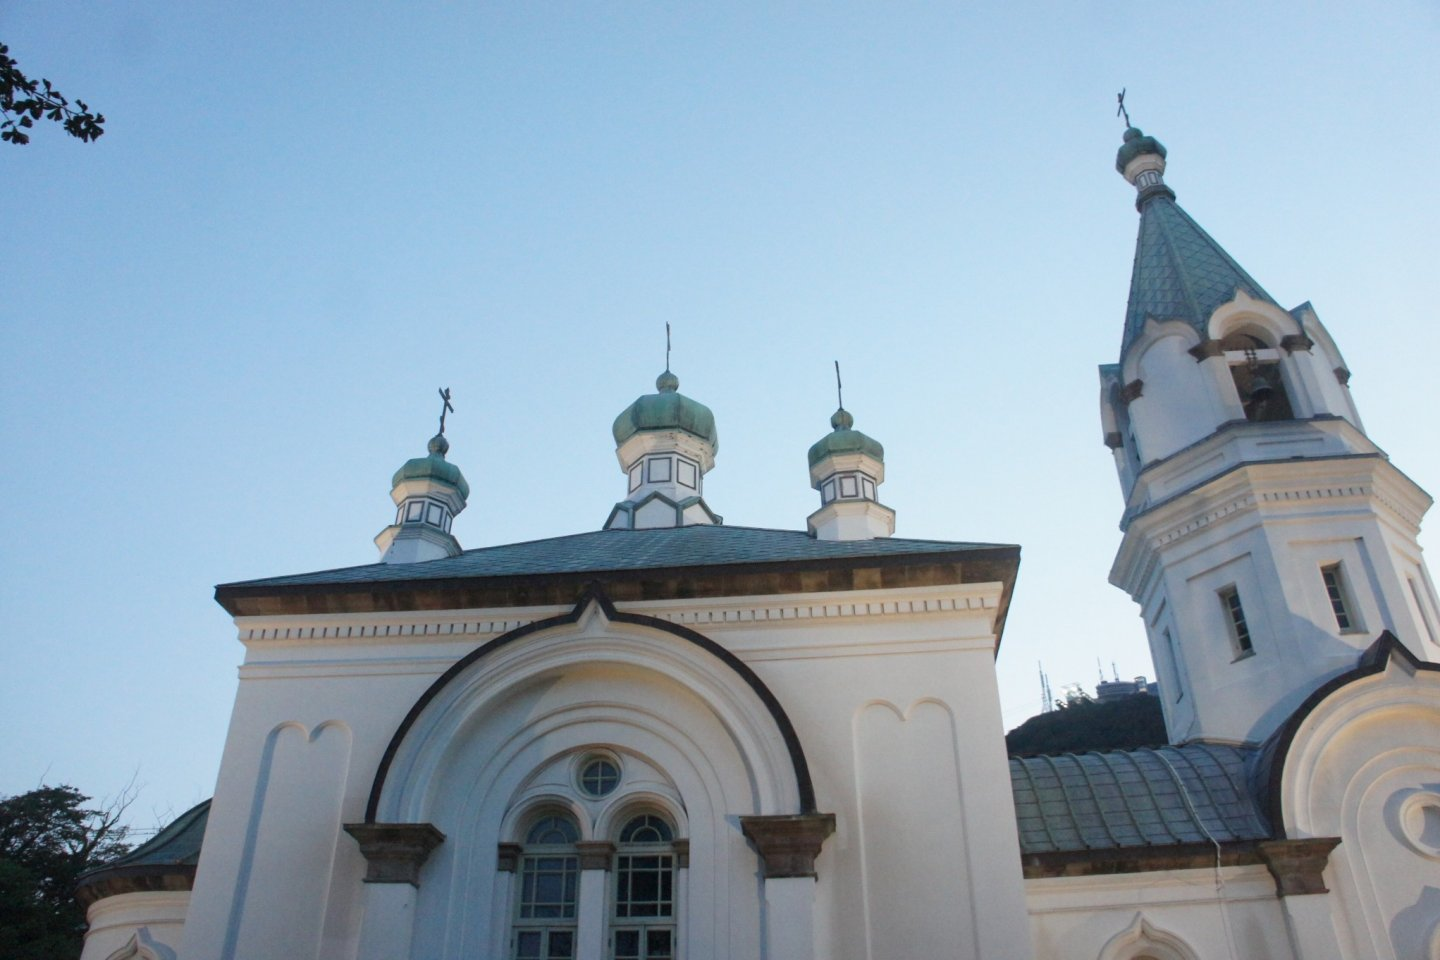 Russian Orthodox Church was built in the Russian Byzantine style from the 19th century